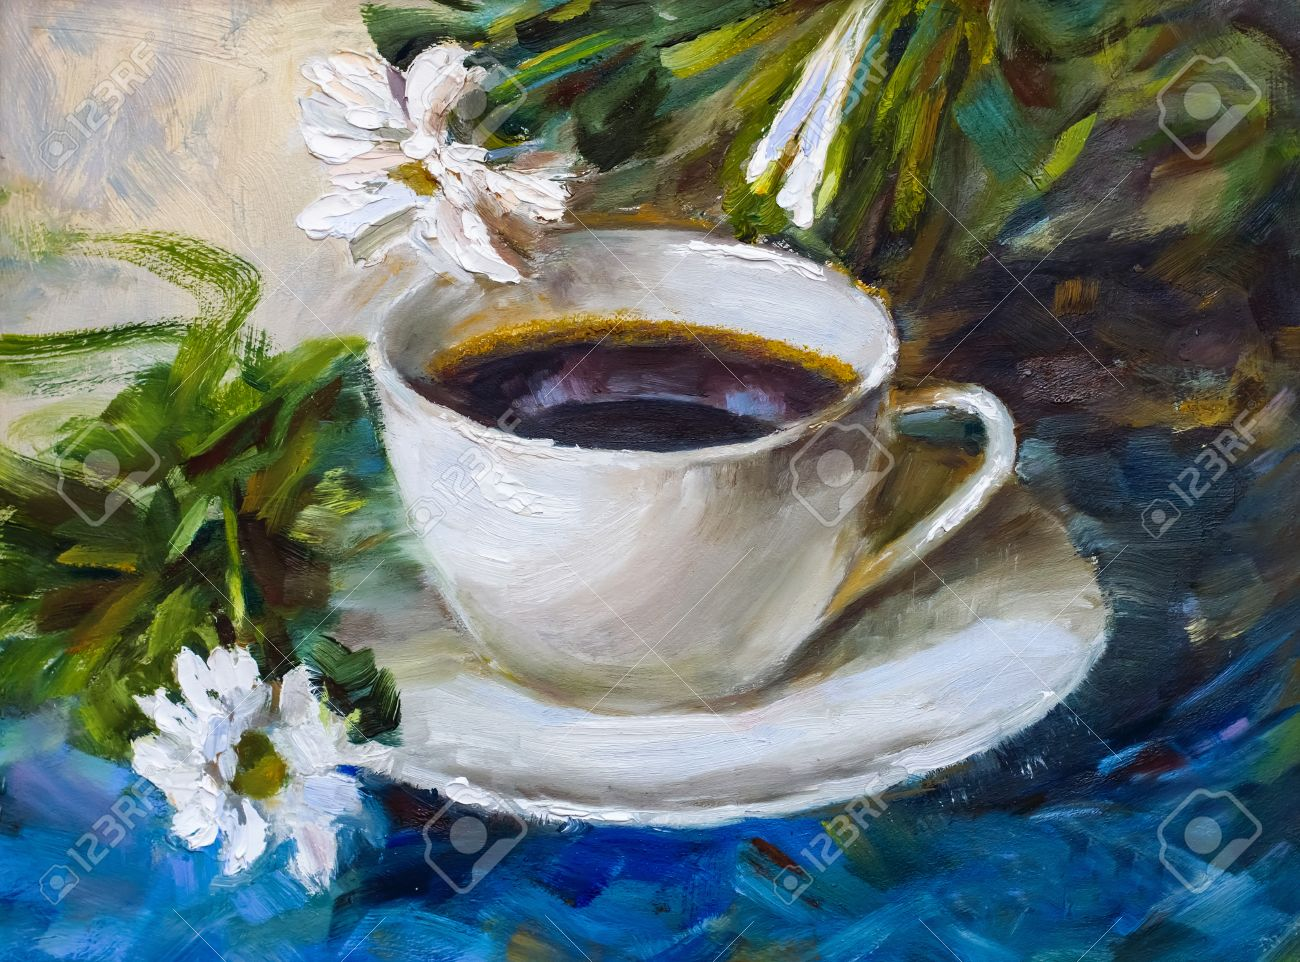 Painting Texture Oil Painting Still Life A Cup Of Coffee Drink